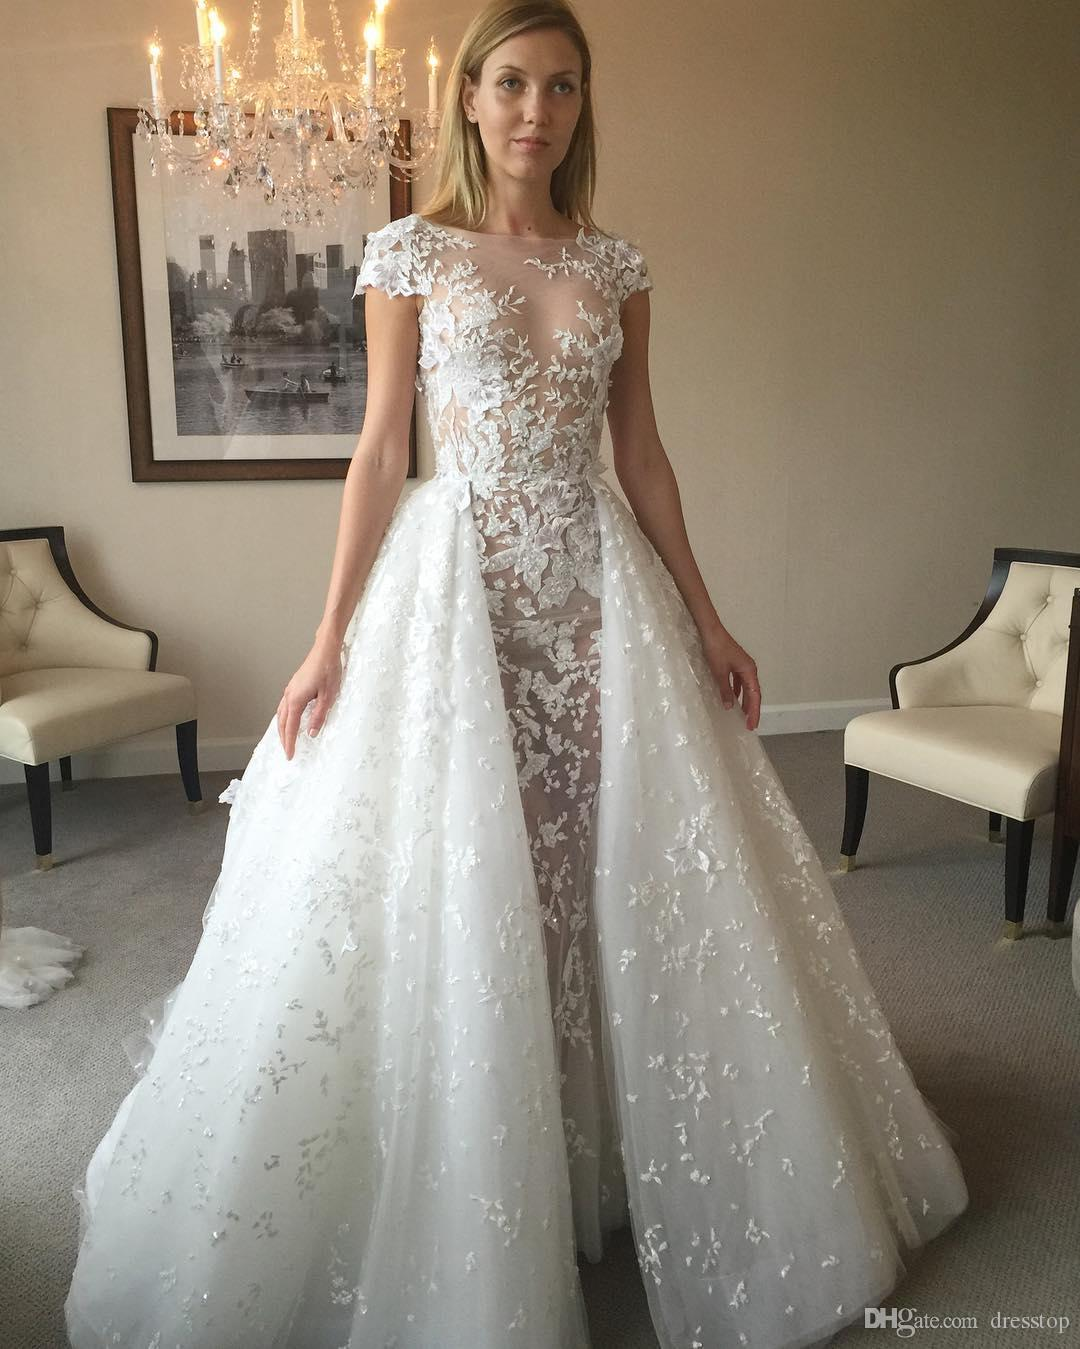 c33a0c8a8ec2 2017 Zuhair Murad Overskirt Wedding Dresses Short Sleeves Sheer Jewel Neck  Appliqued Tulle Chapel A Line Sweep Train Beaded Bridal Gowns Canada 2019  From ...